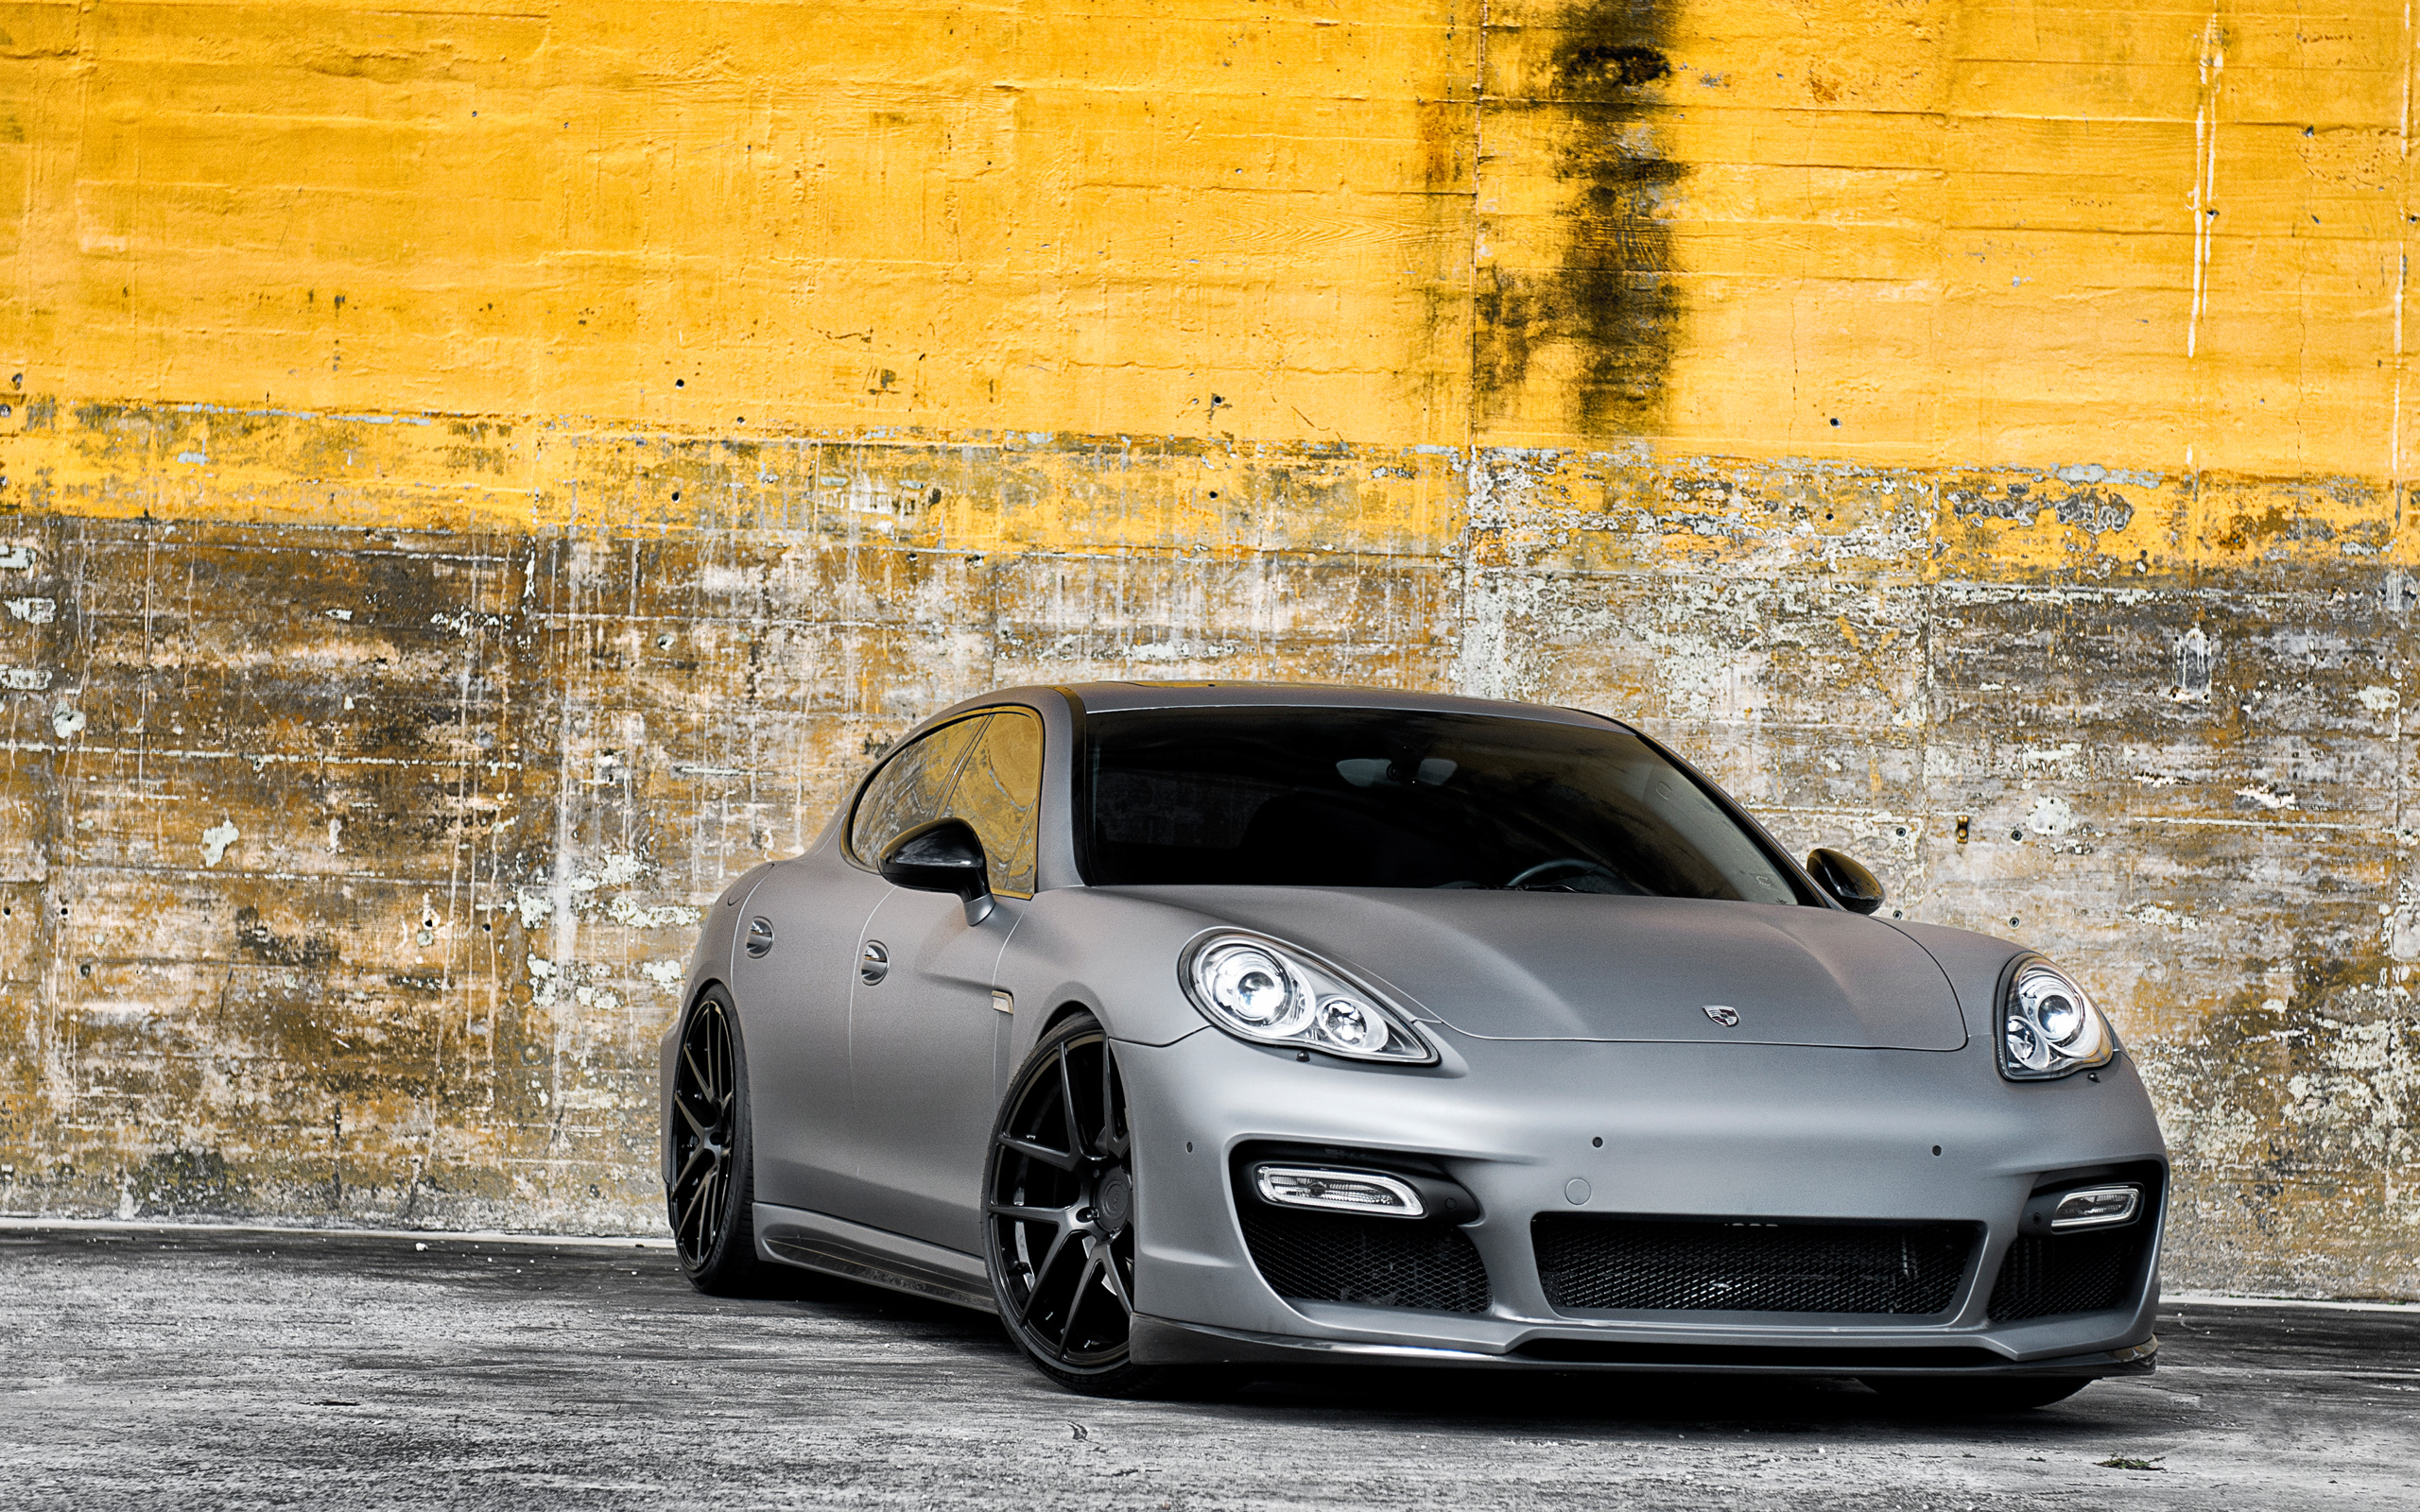 Porsche Panamera Hd Cars 4k Wallpapers Images Backgrounds